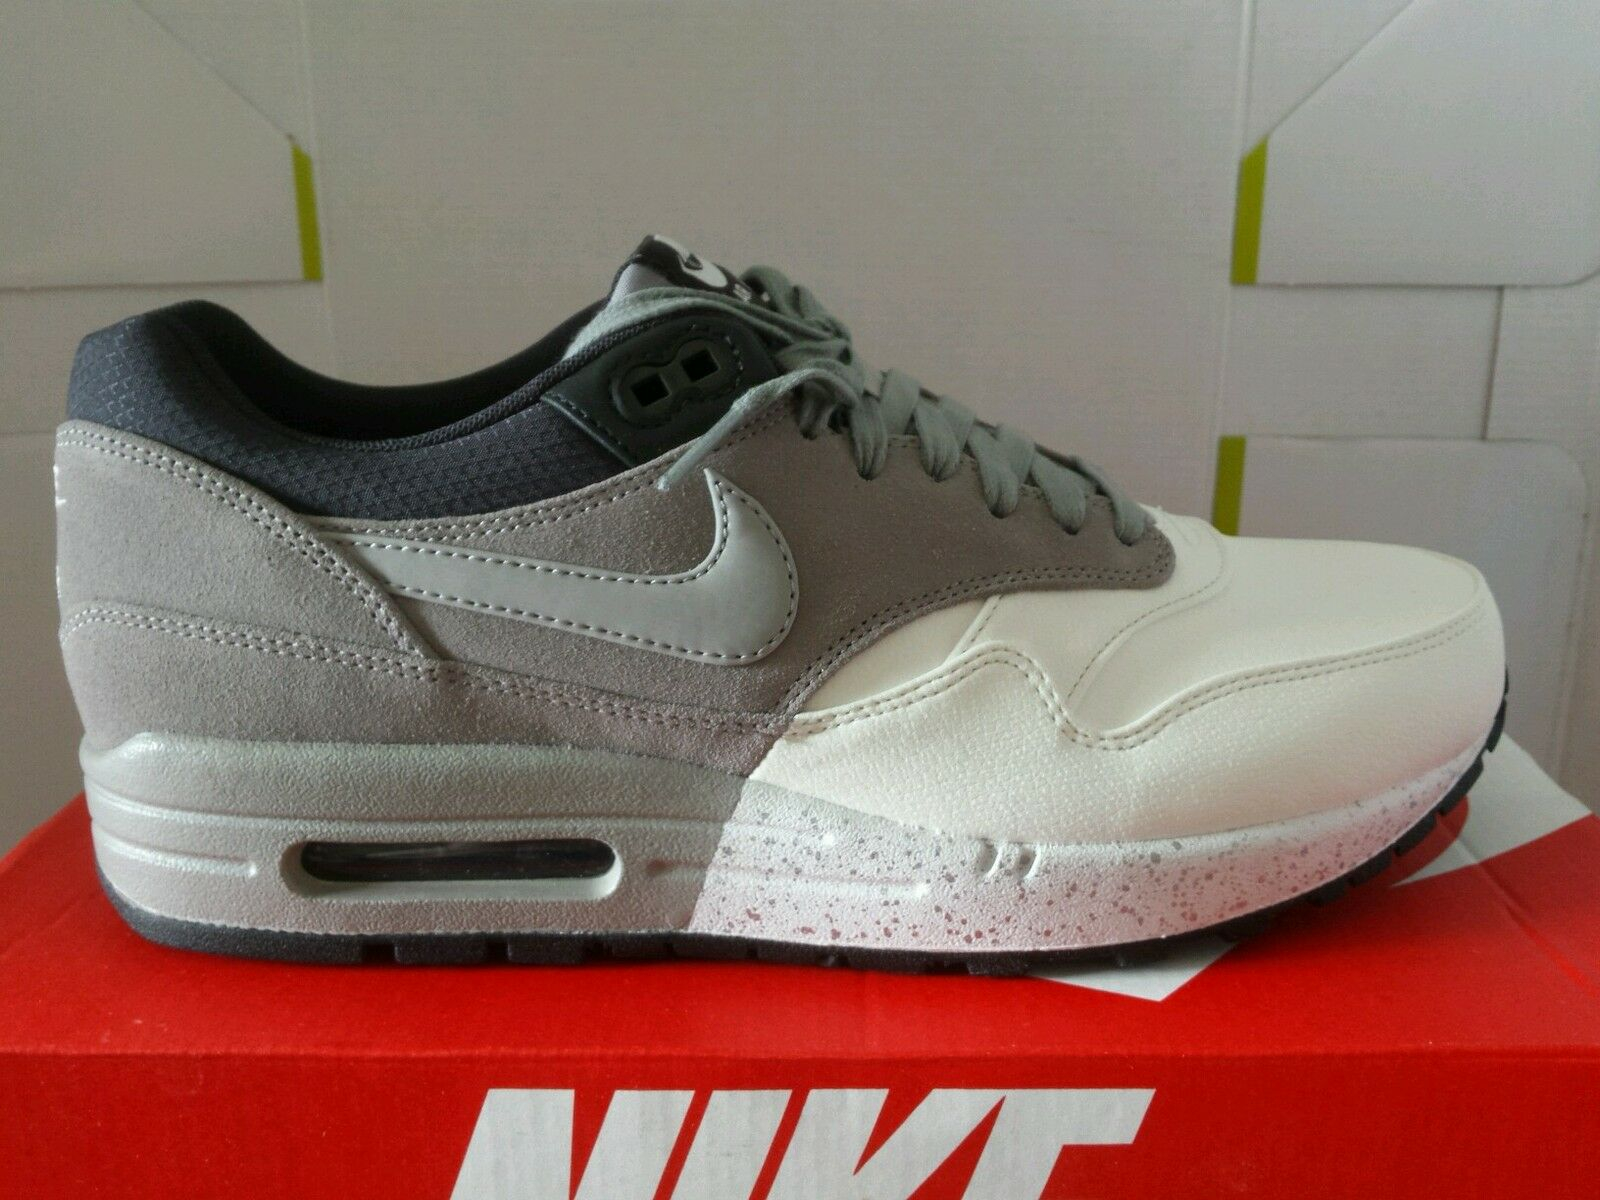 NIKE AIR MAX 1 ESSENTIAL 97 white grey N.43 CUIR LIMITED PRIX SURBAISSÉE